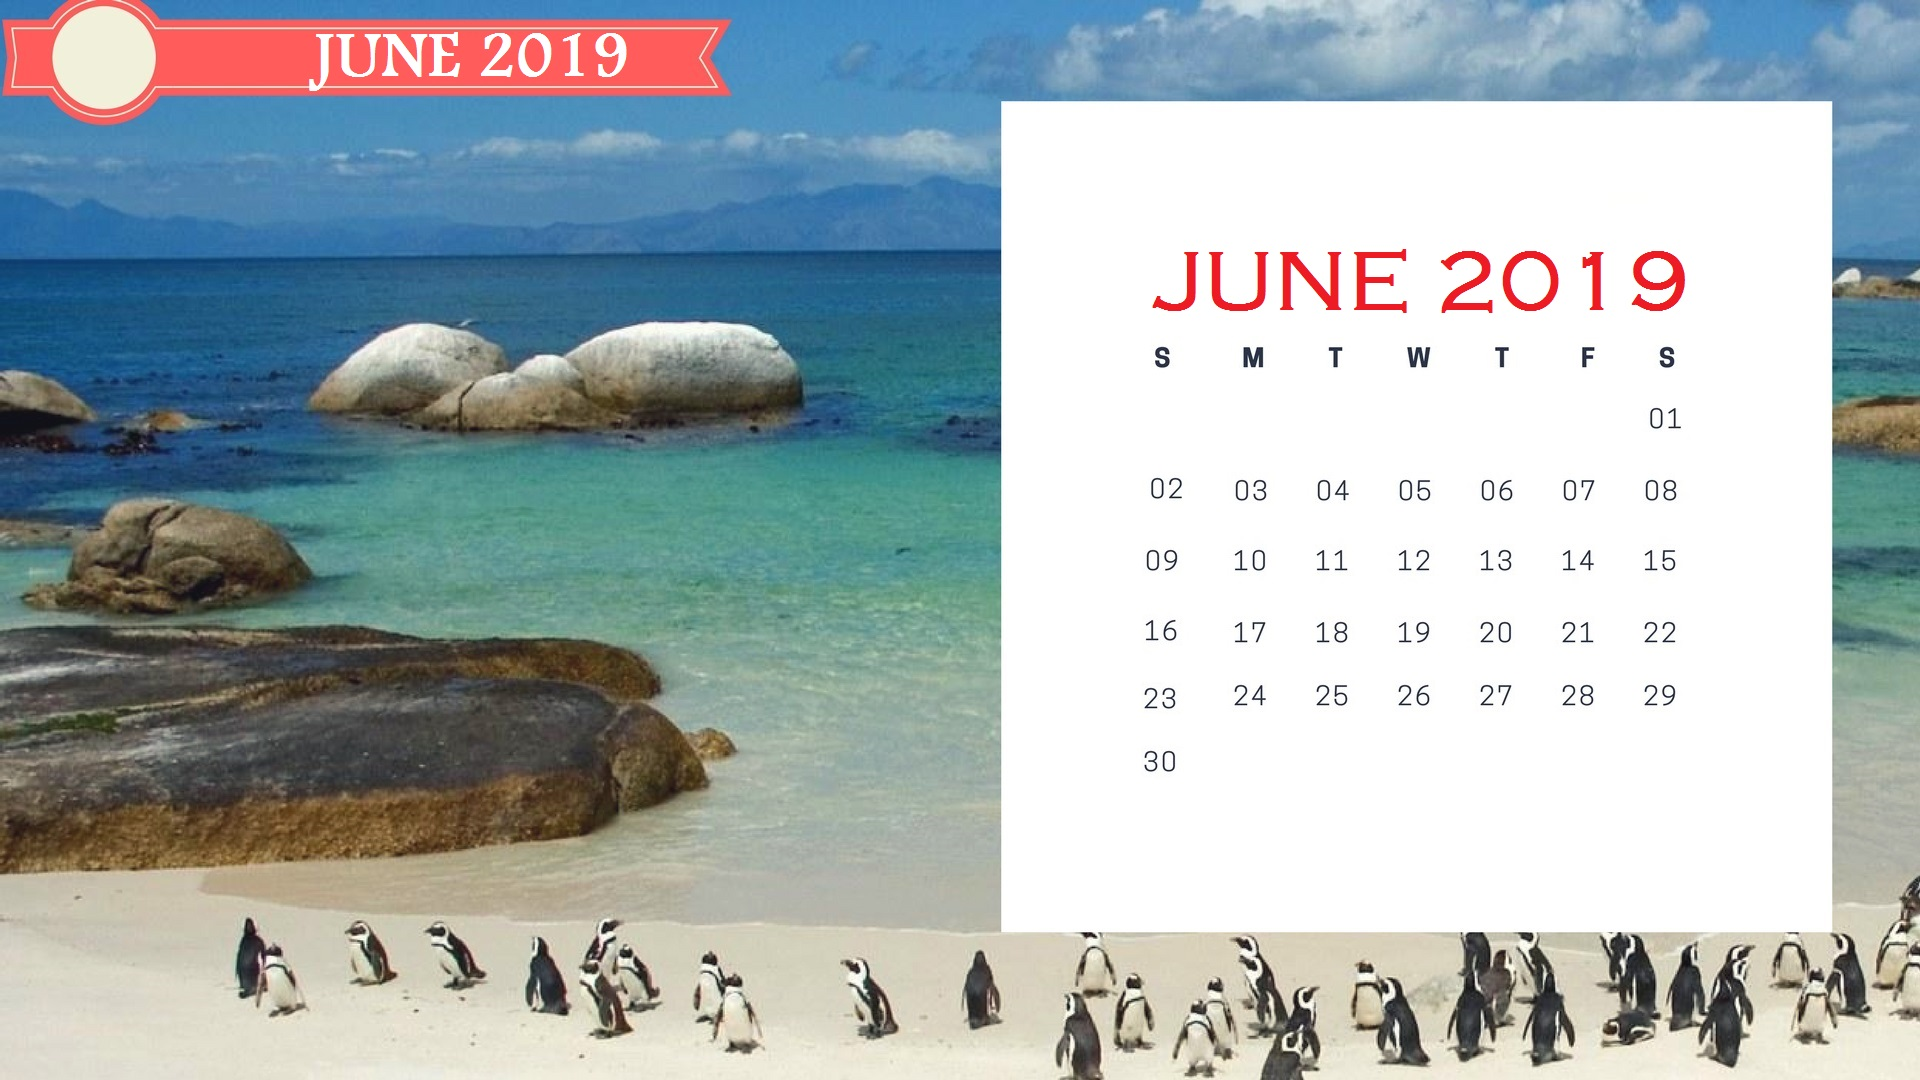 June 2019 Wall Calendar To Print